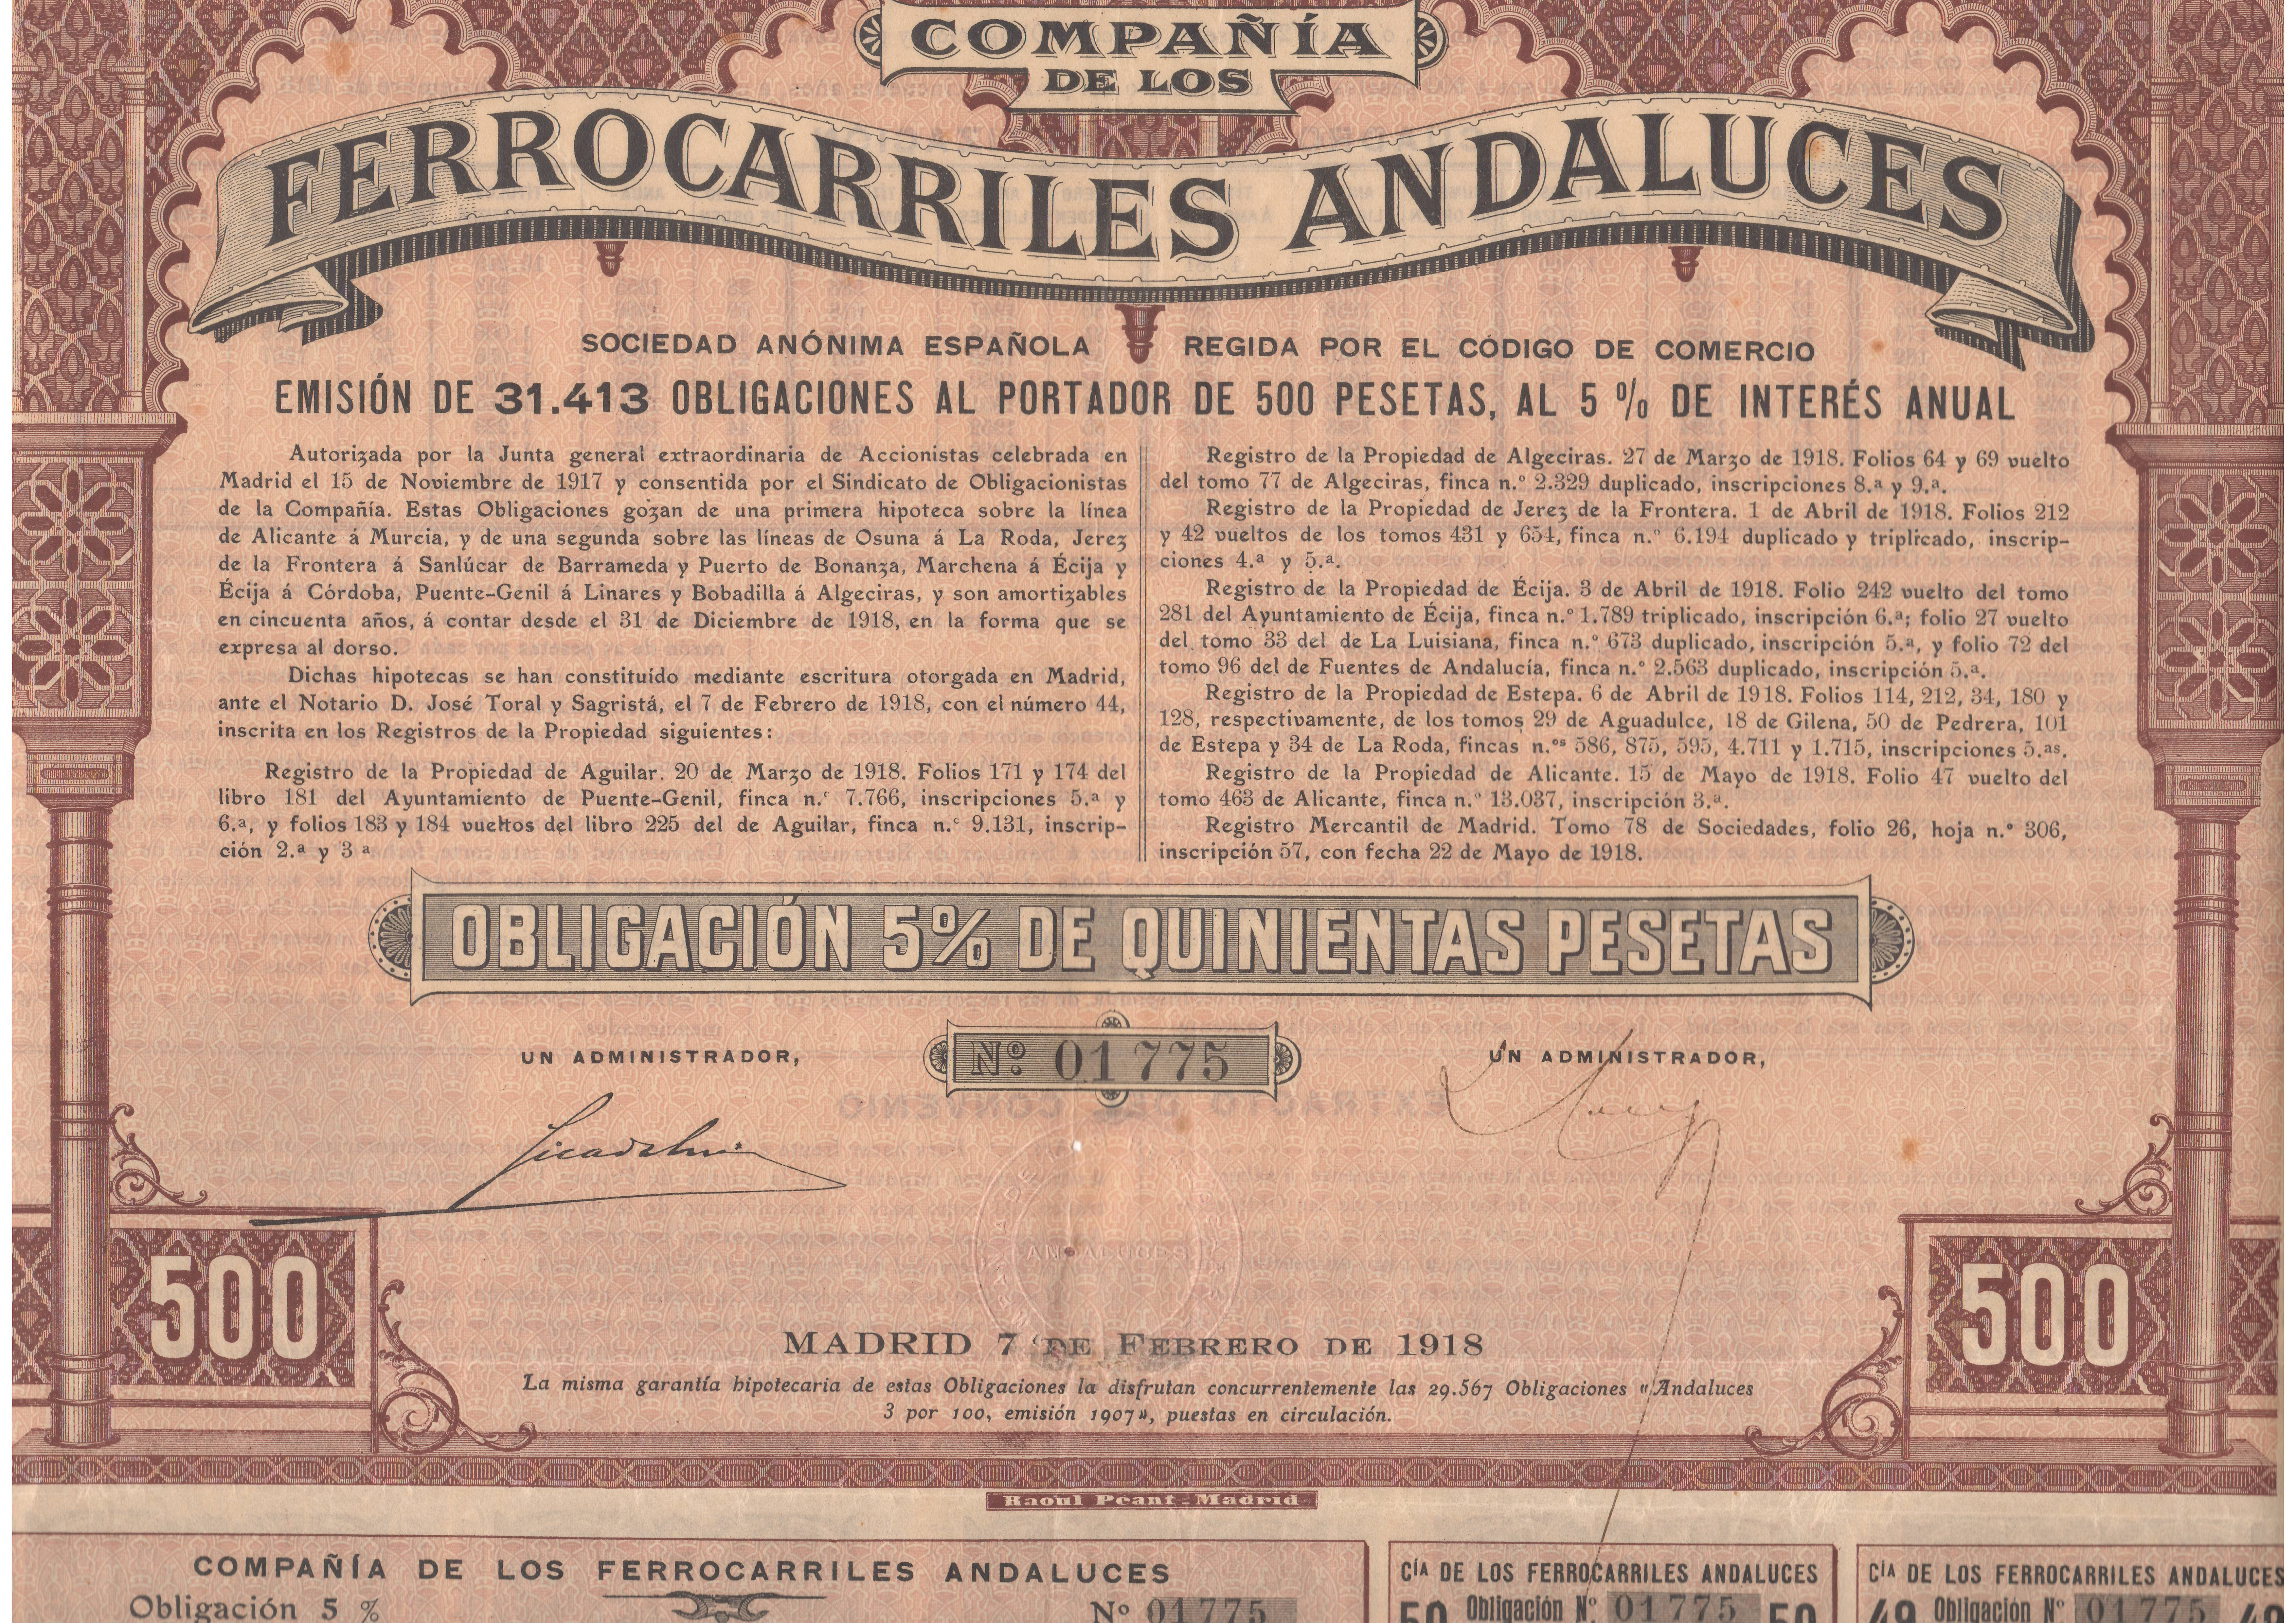 Ferrocarriles Andaluces